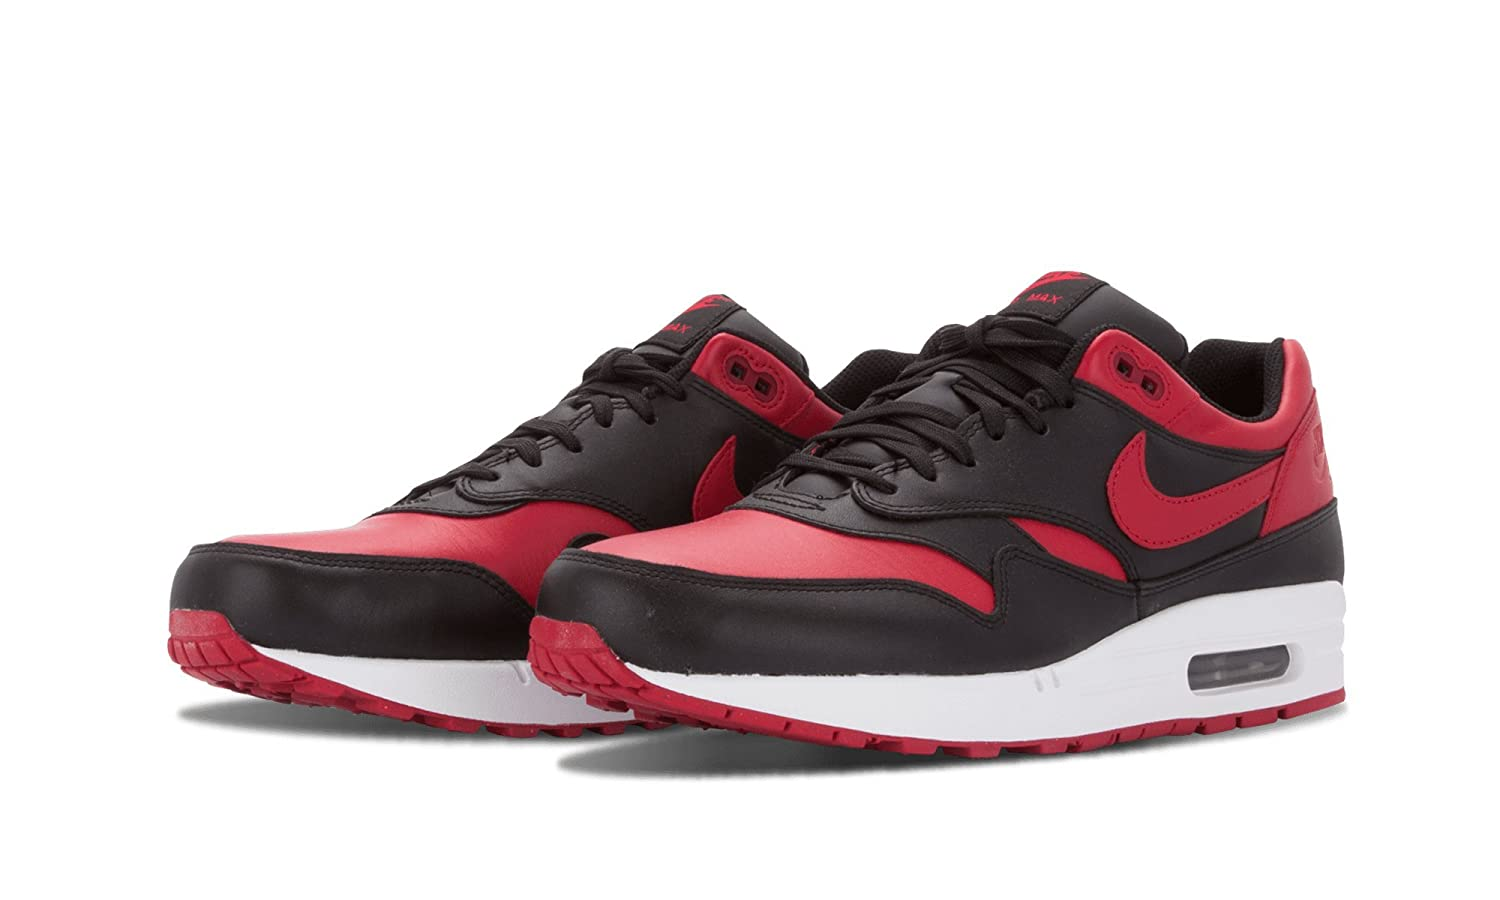 nike air max 1 premio qs dimensioni 6 basket